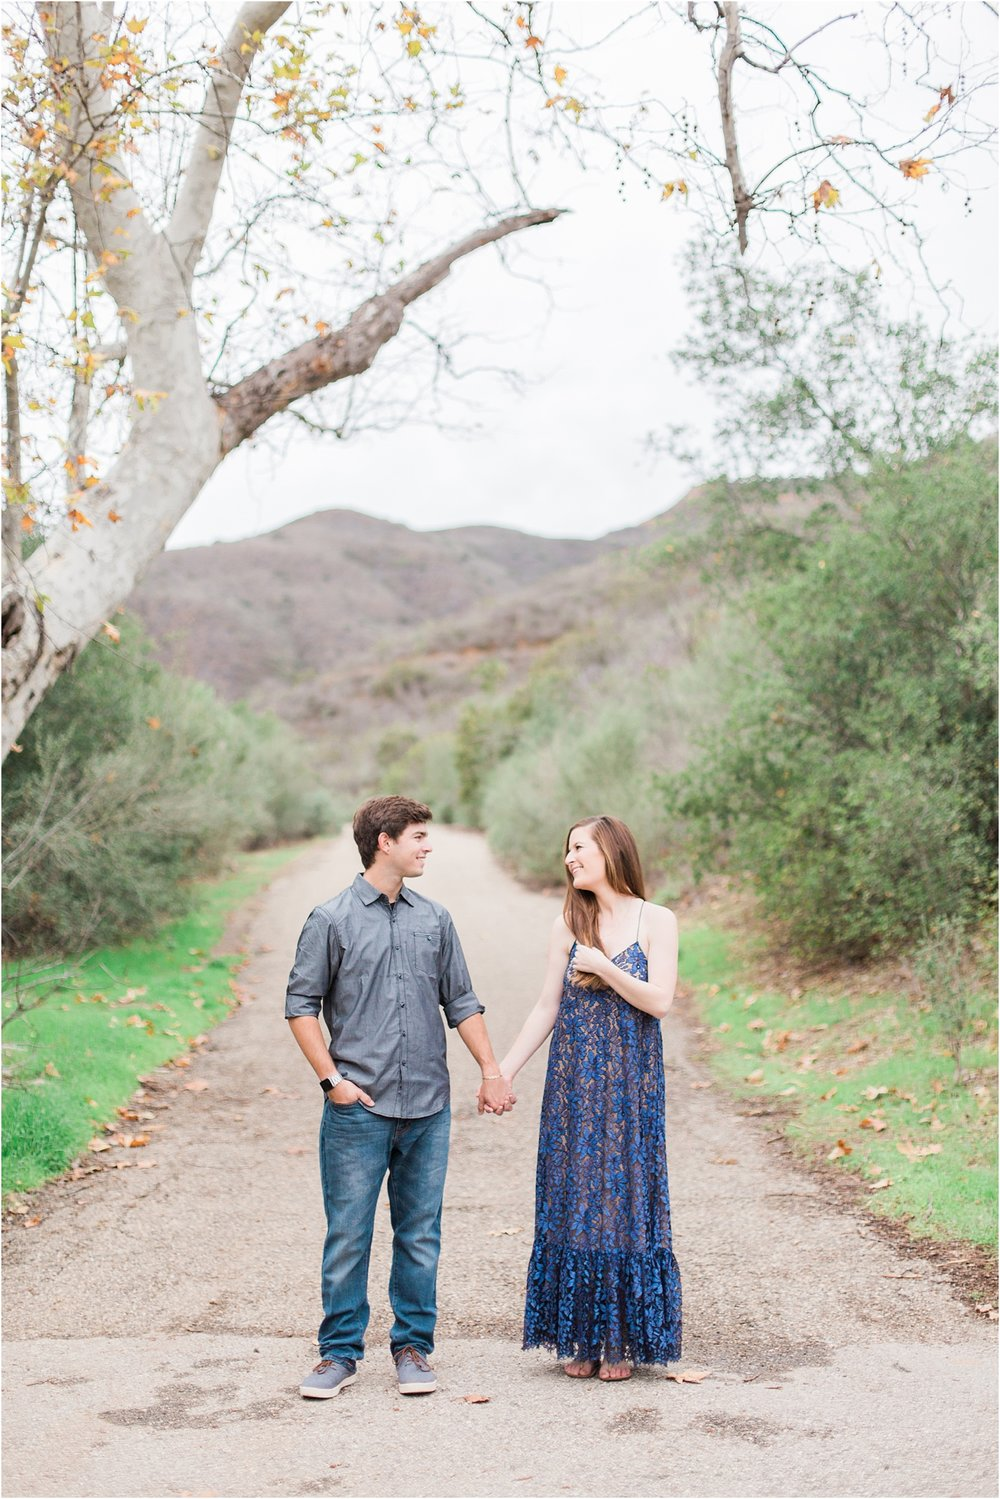 Solstice Canyon Engagement Session, Malibu, Ca